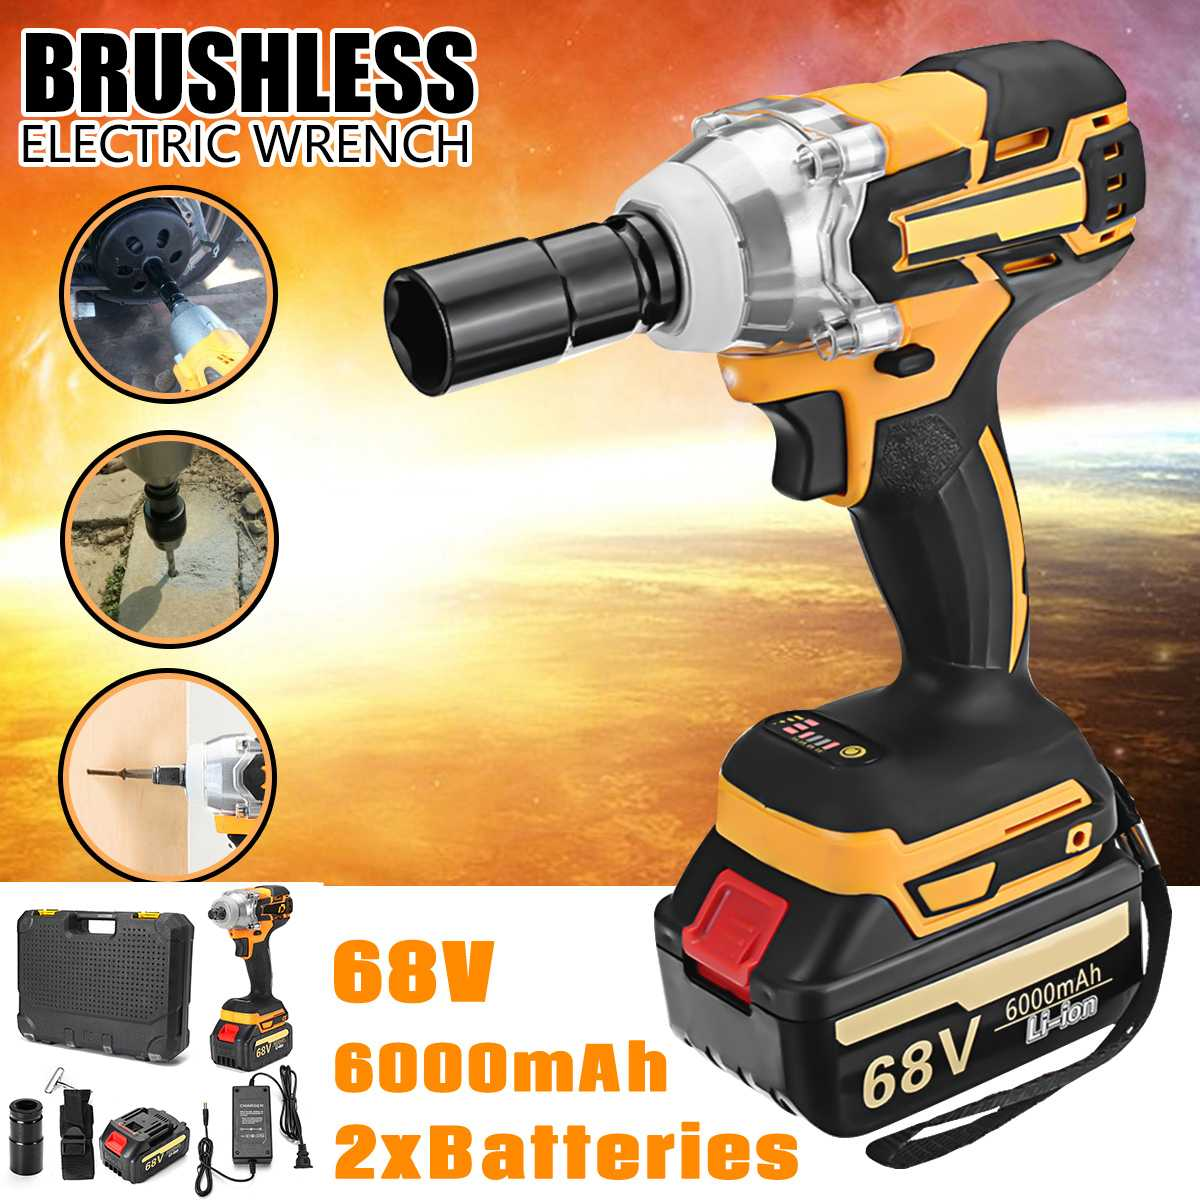 380 N.M Electric Wrench 68V 6000mAh 2 Batteries Brushless Cordless Drive Hand Drill Car Socket Electric Impact Wrench